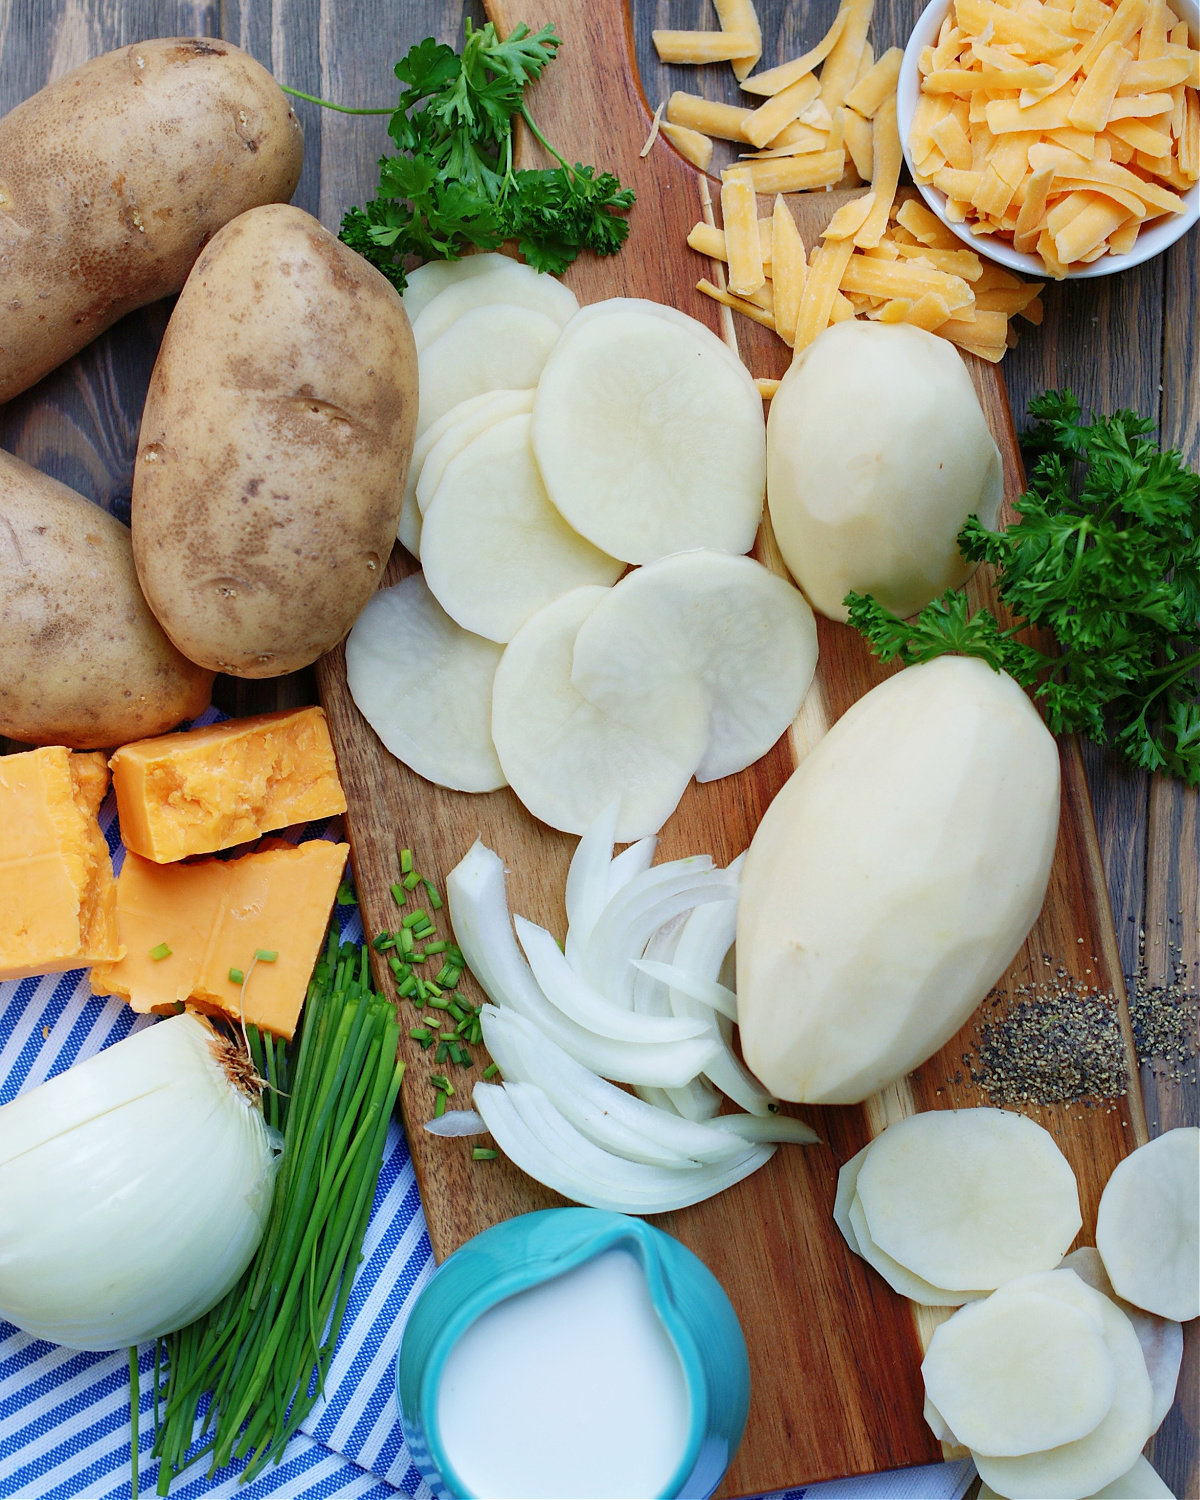 Ingredients for Scalloped Potatoes with cream sauce and cheddar cheese.